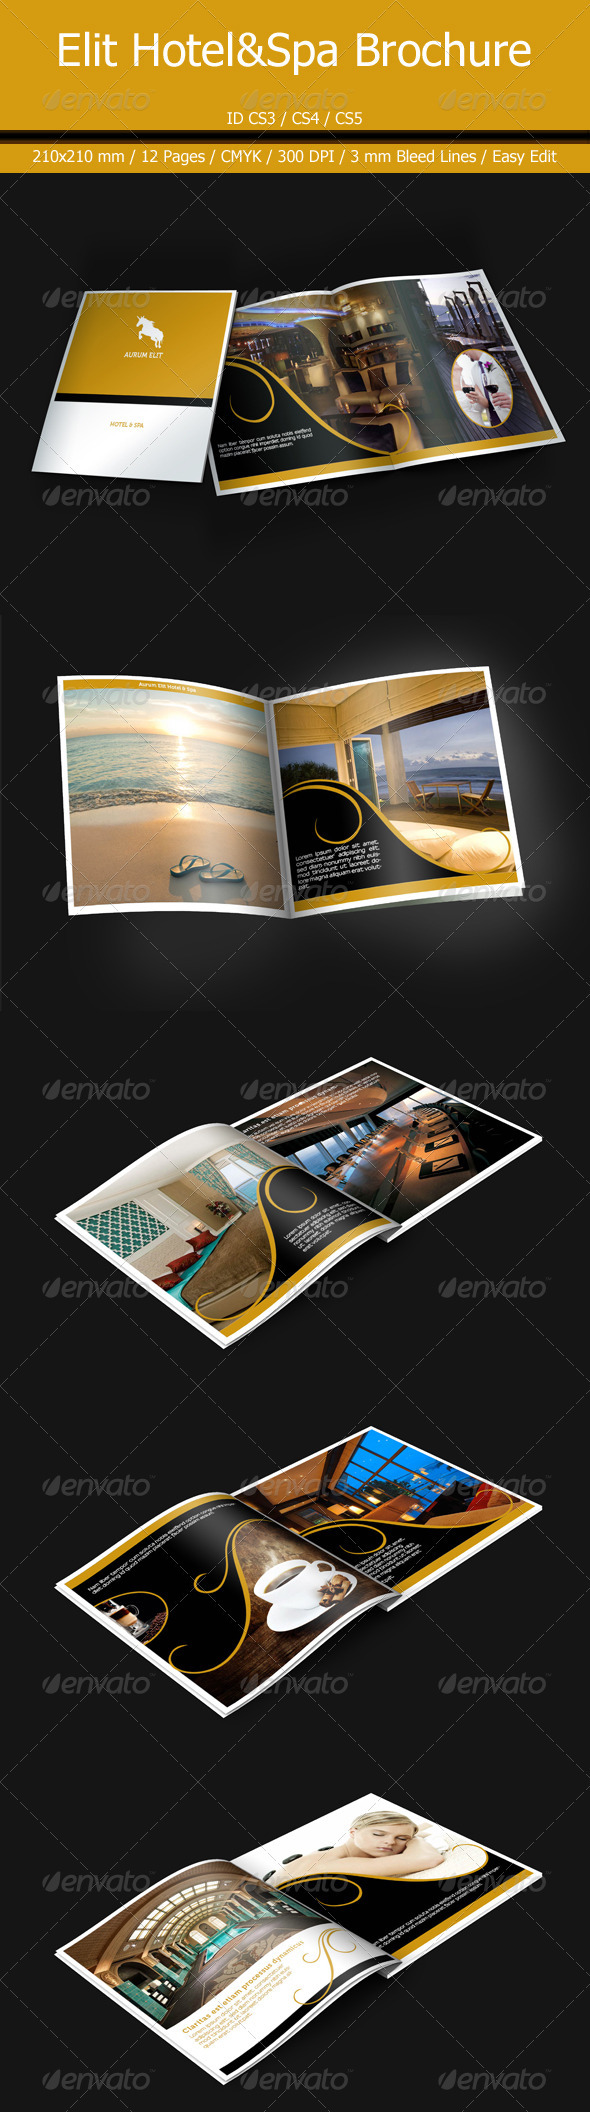 Aurum Elit Hotel&Spa Brochure - Corporate Brochures